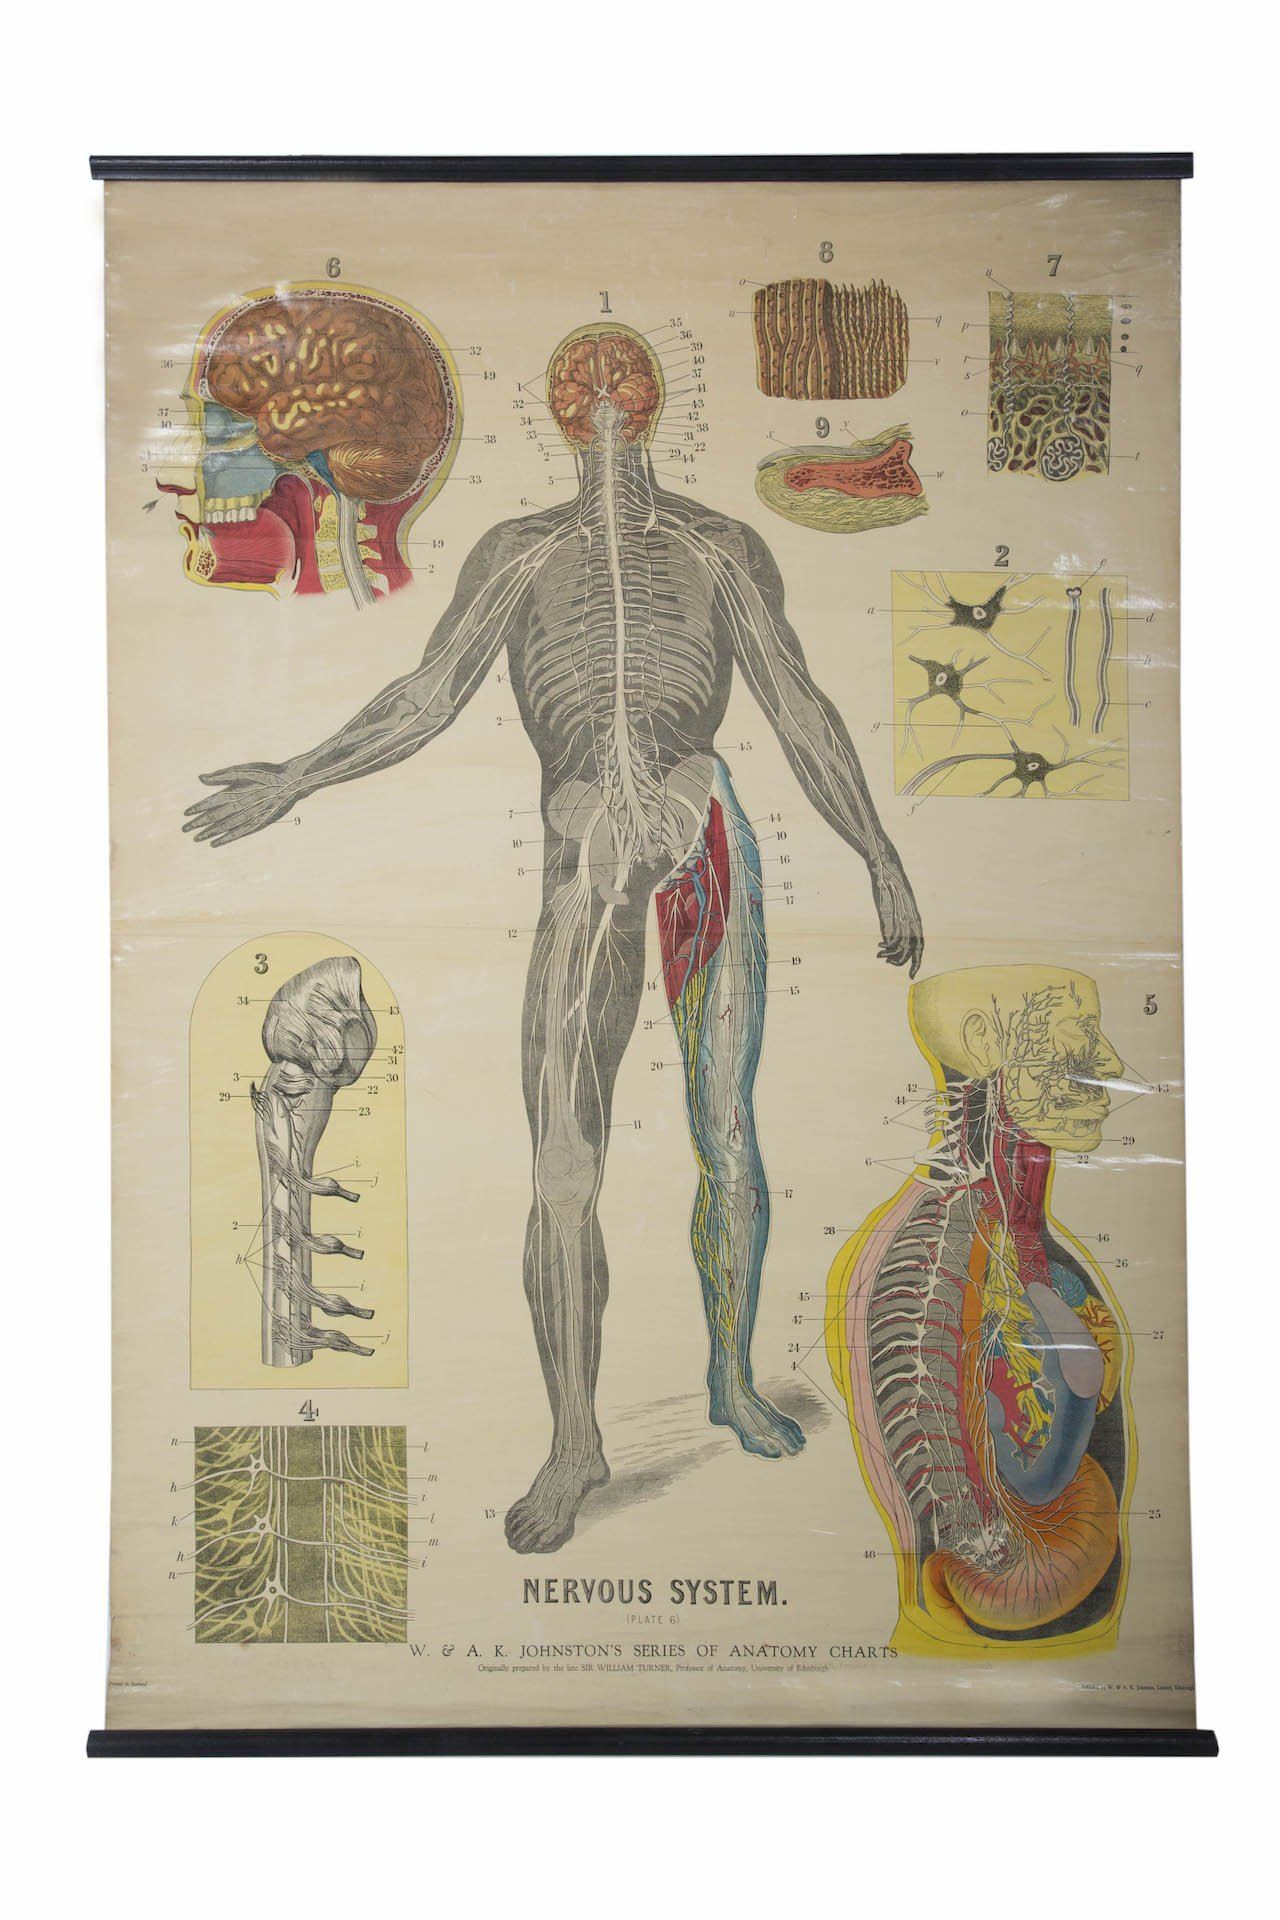 W. & A.K. Johnston's early 20th Century anatomy - Nervous system